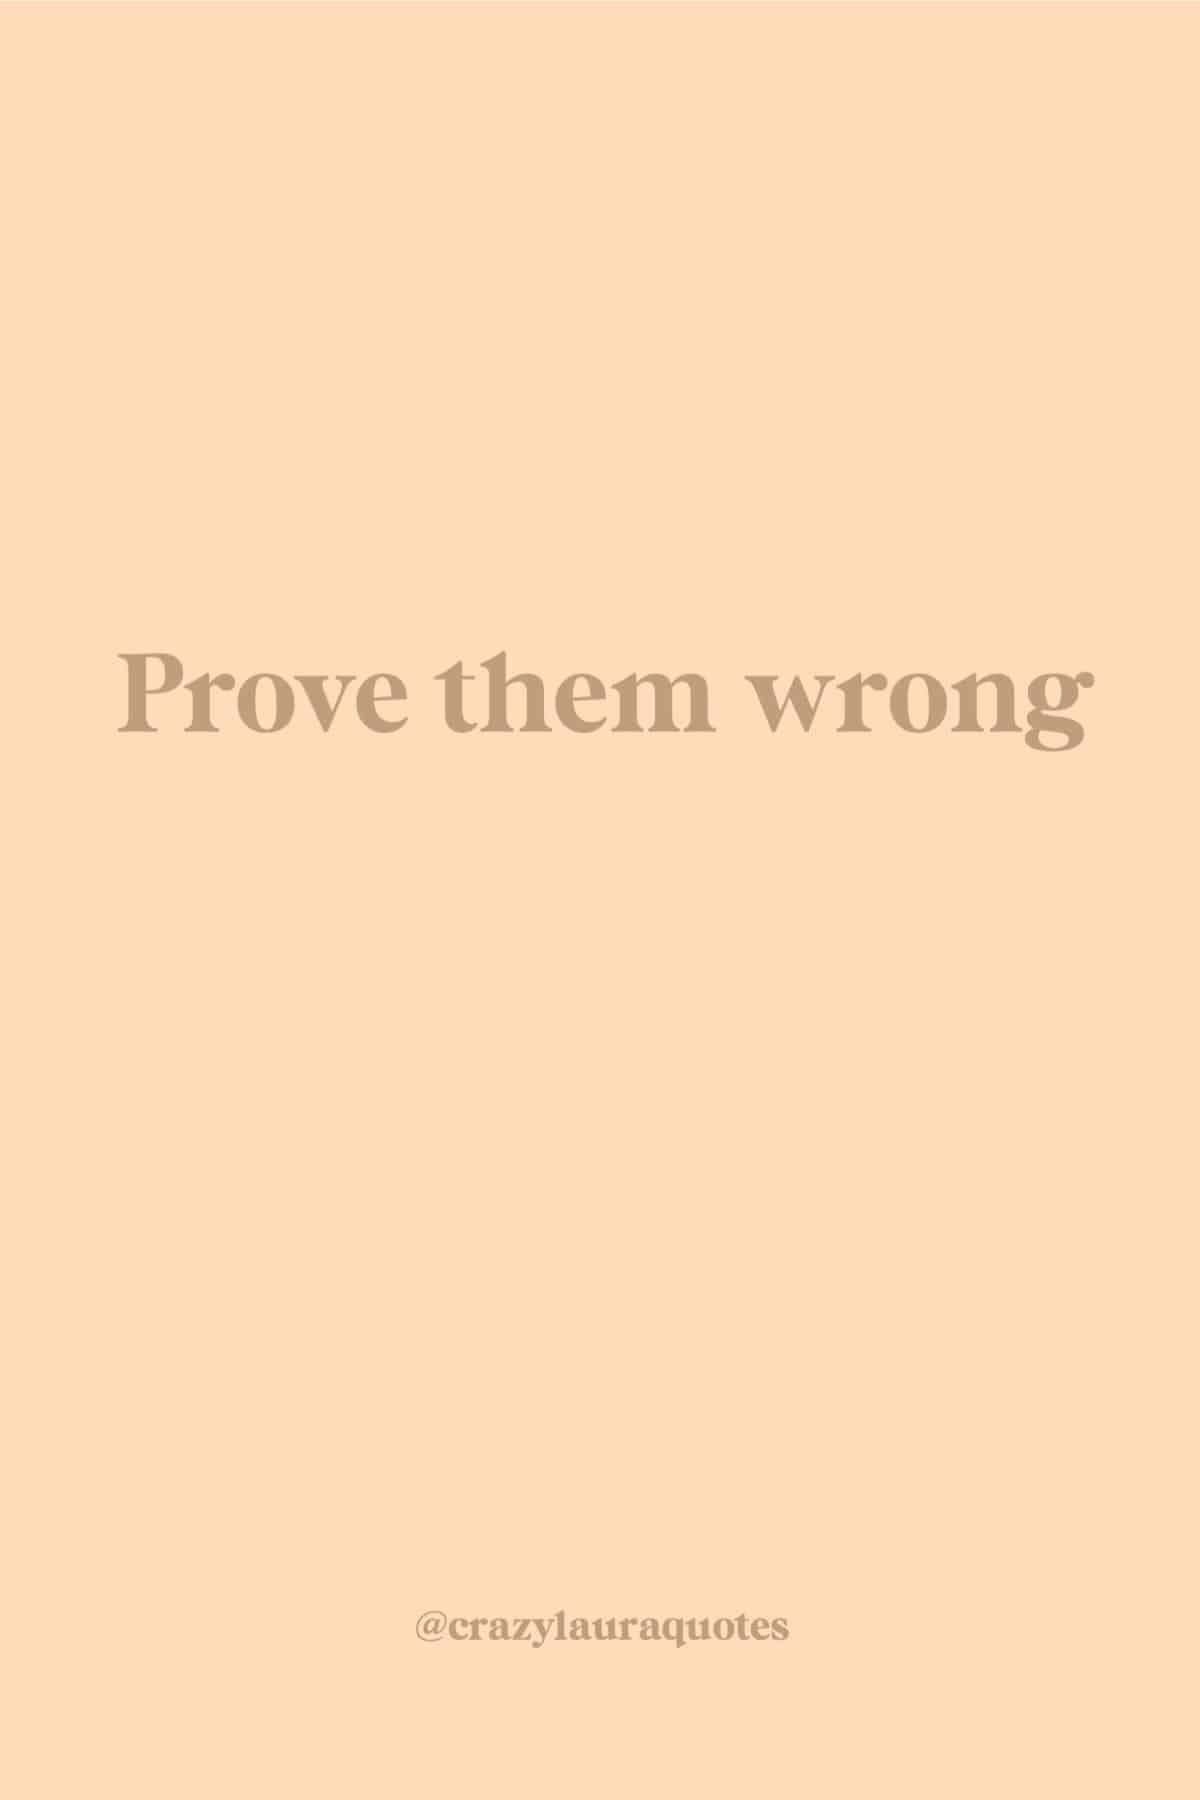 short quote about proving them wrong